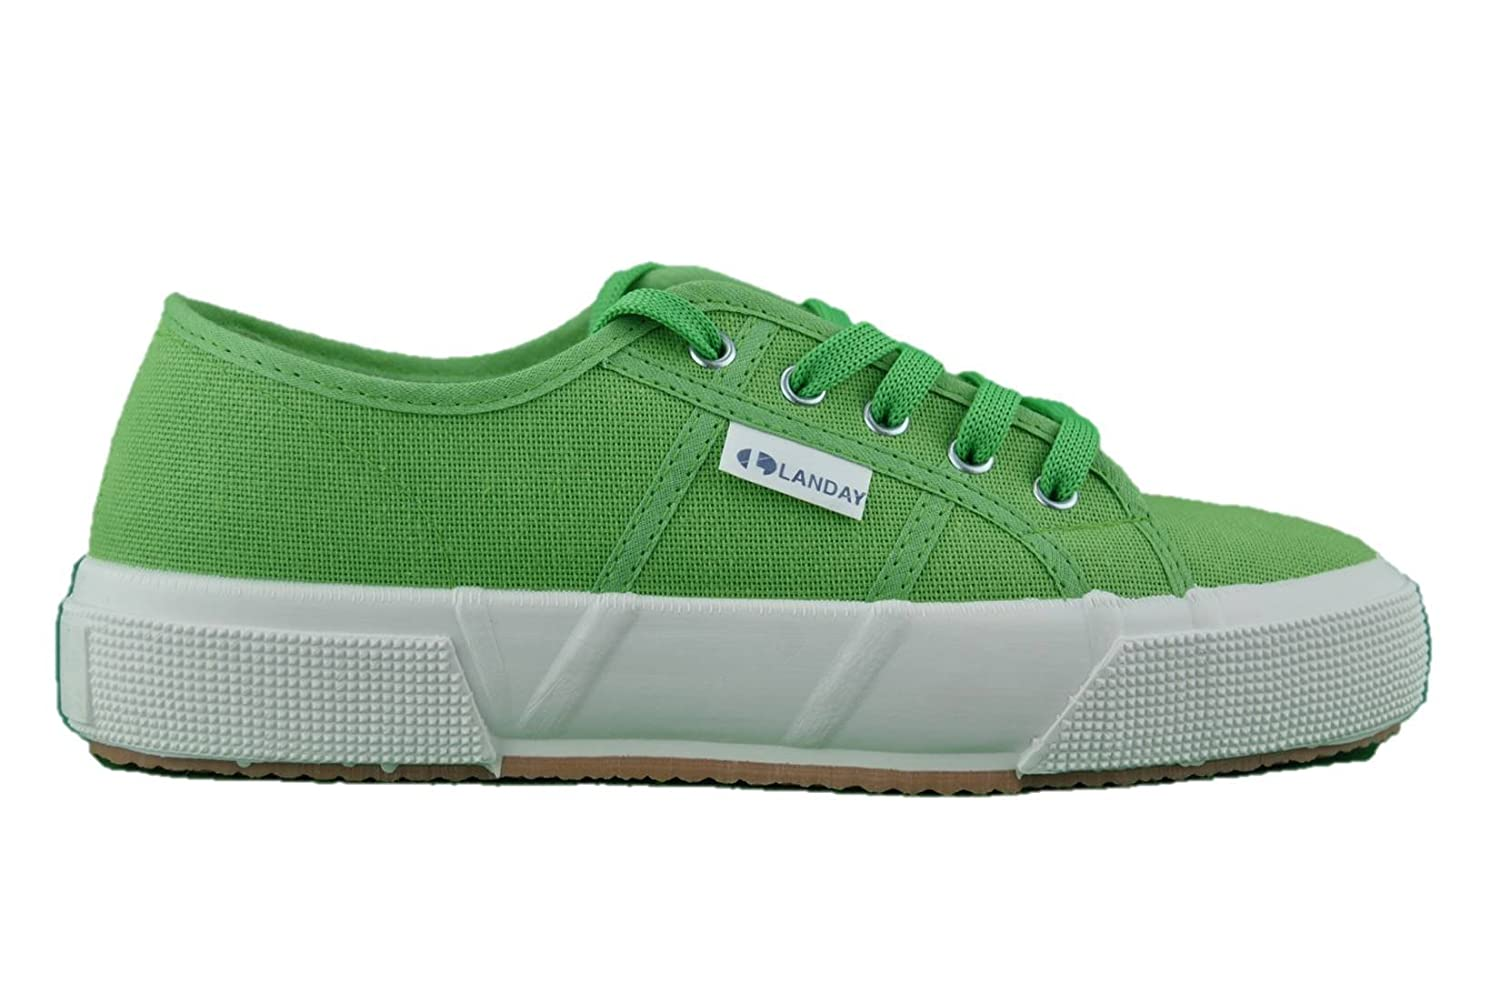 c377f92b42a7d Amazon.com | Made In Italy Sneakers Green Fabric Girl Shoes ...